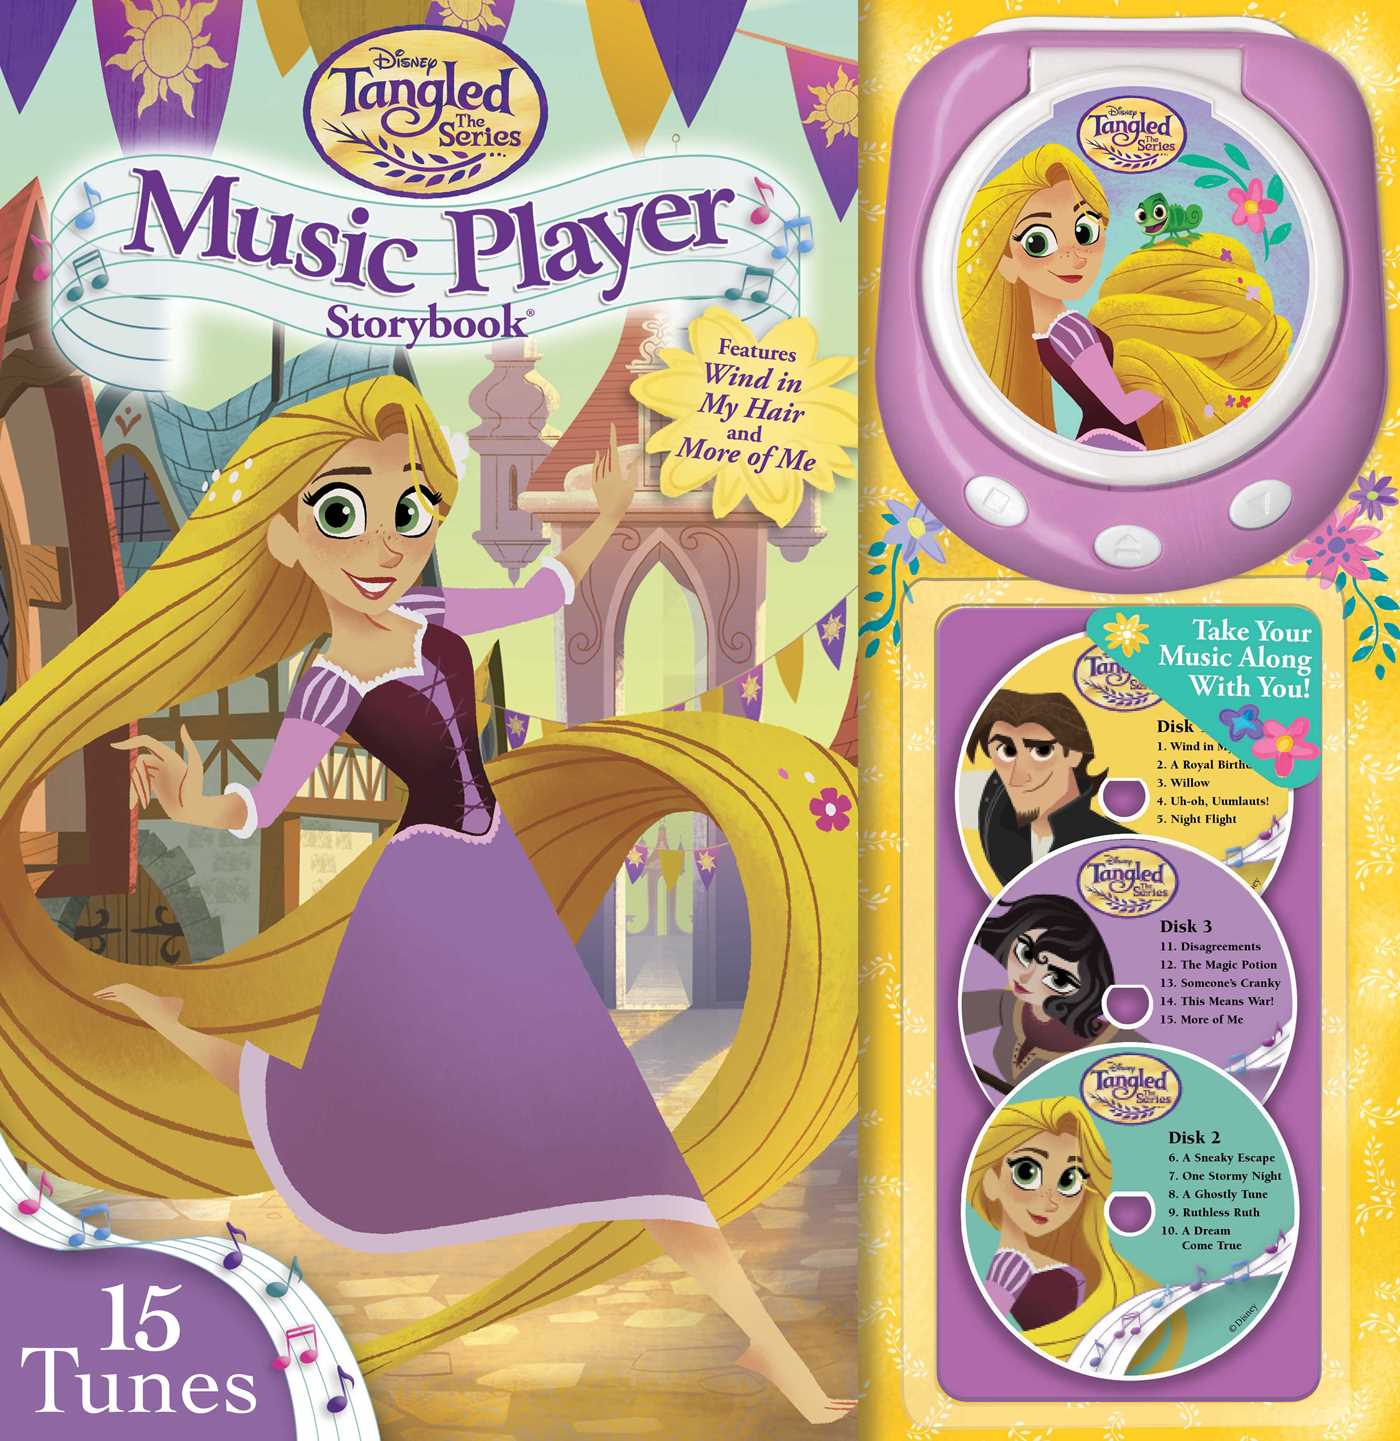 disney tangled the series brave the braid music player storybook